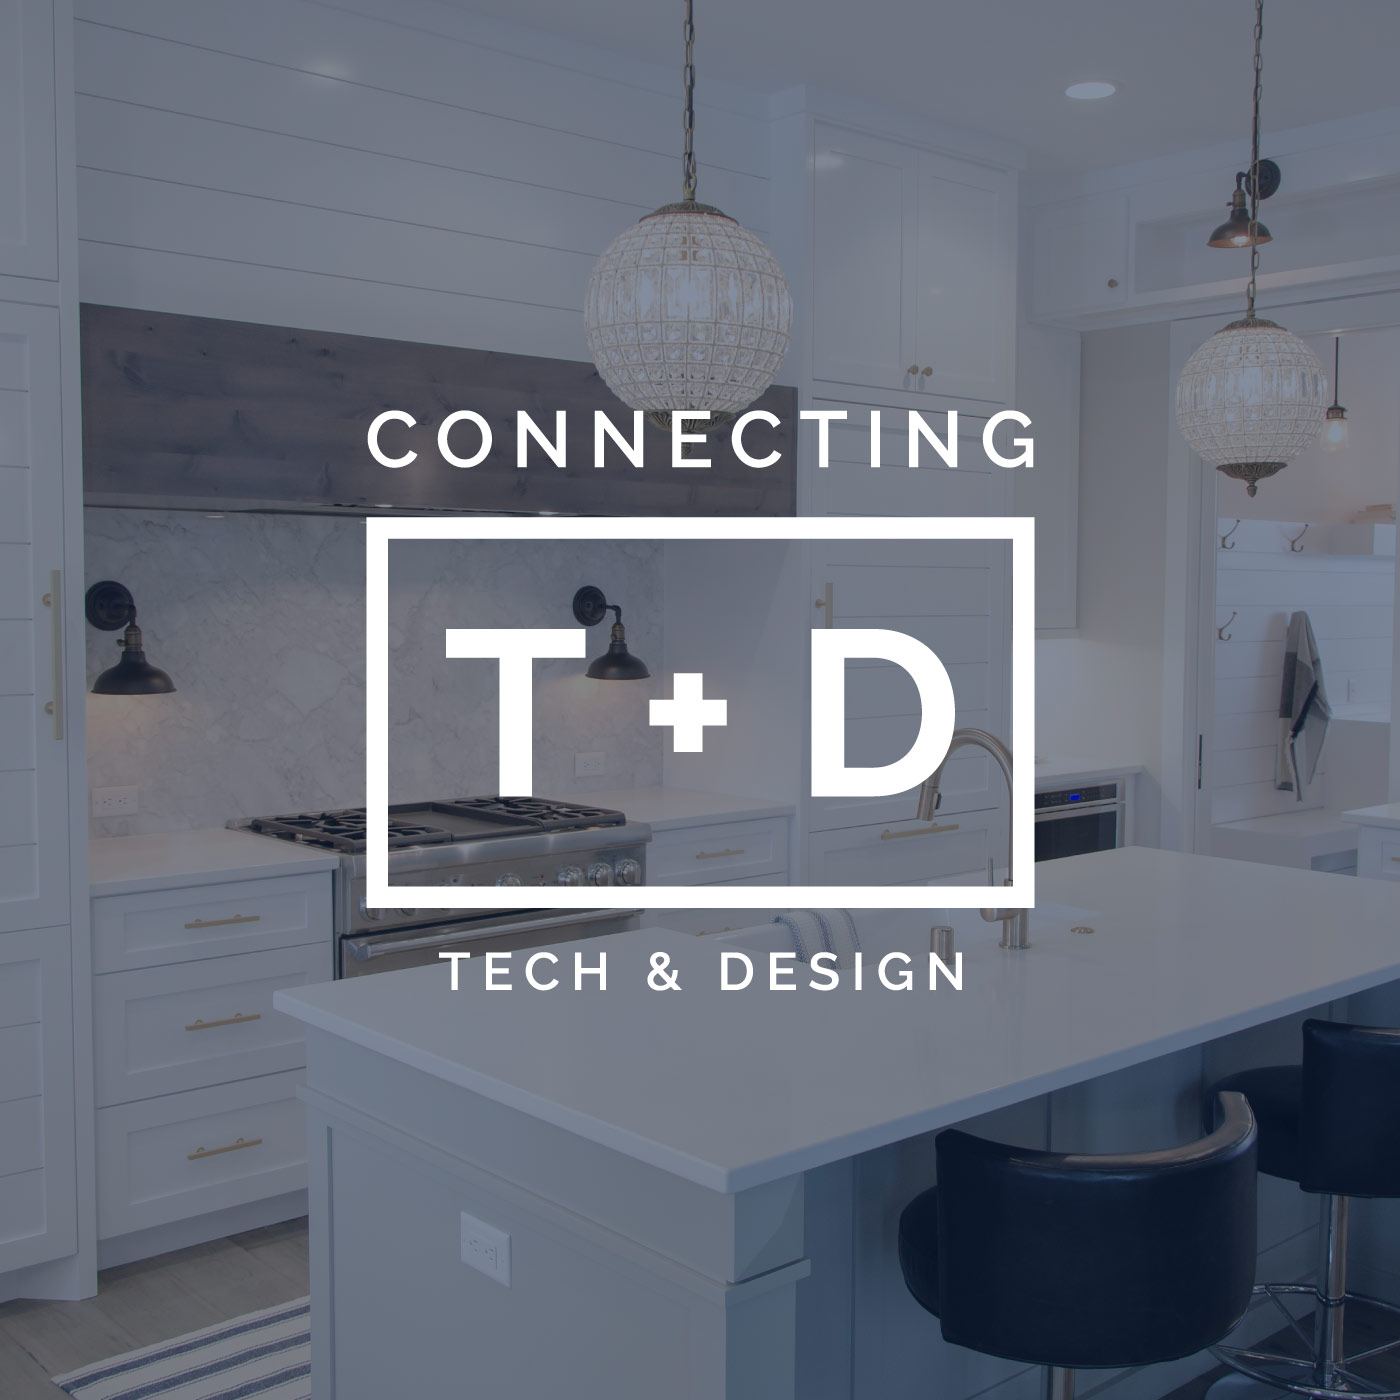 Design Insights: How Connected Kitchens and Baths are Driving More Thoughtfully Connected Homes and Lifestyles